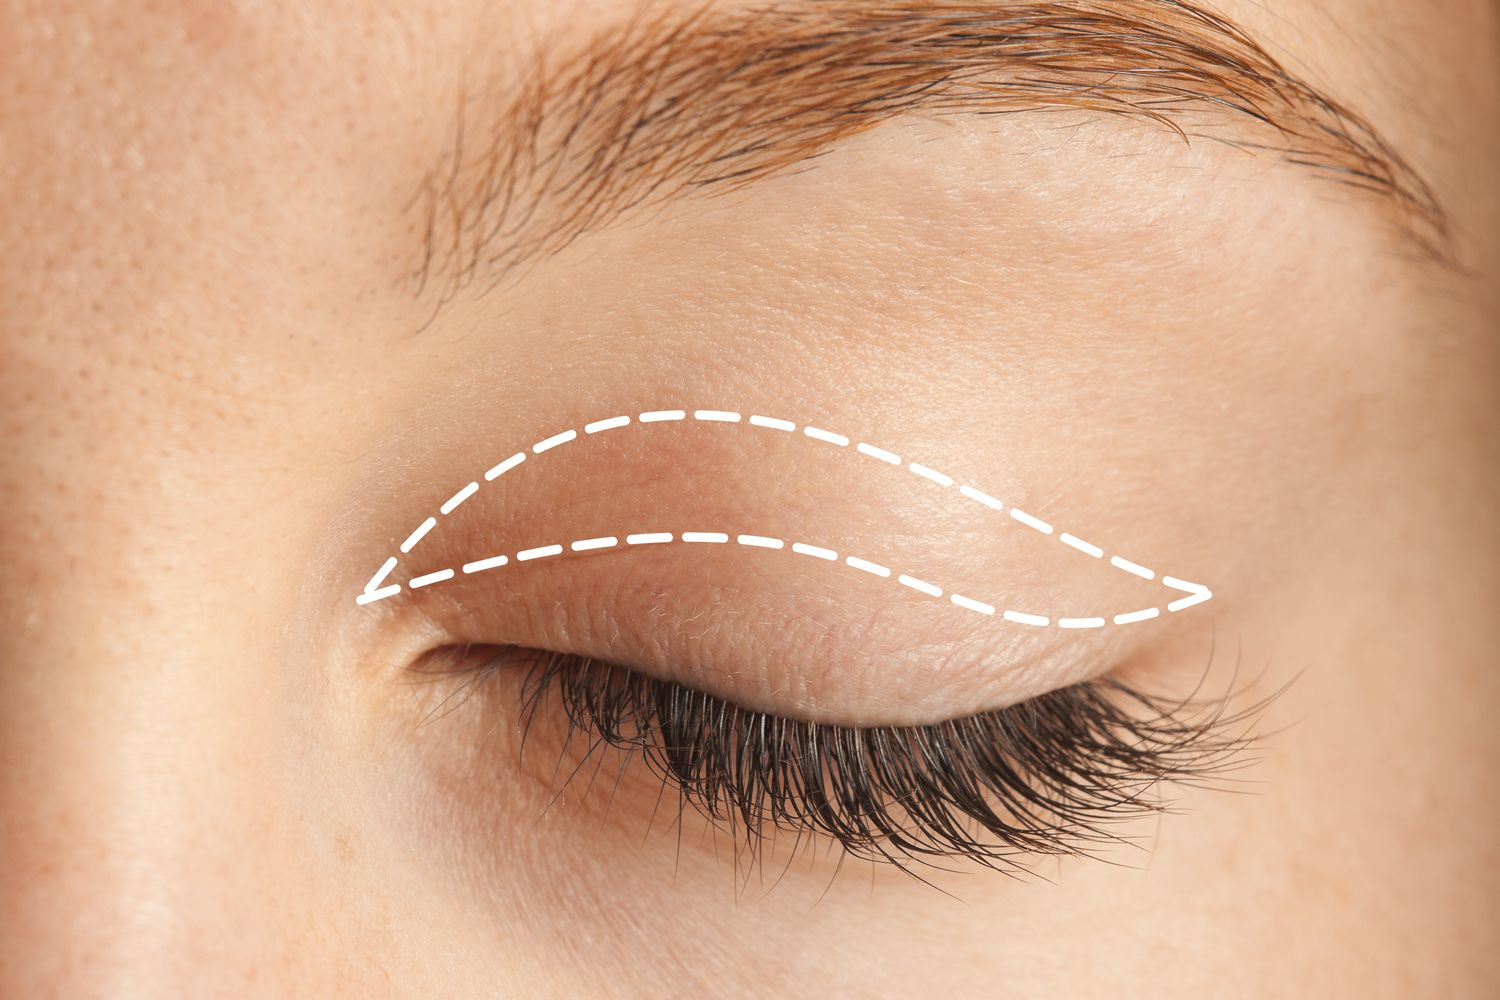 Incisions in an upper eyelid surgery